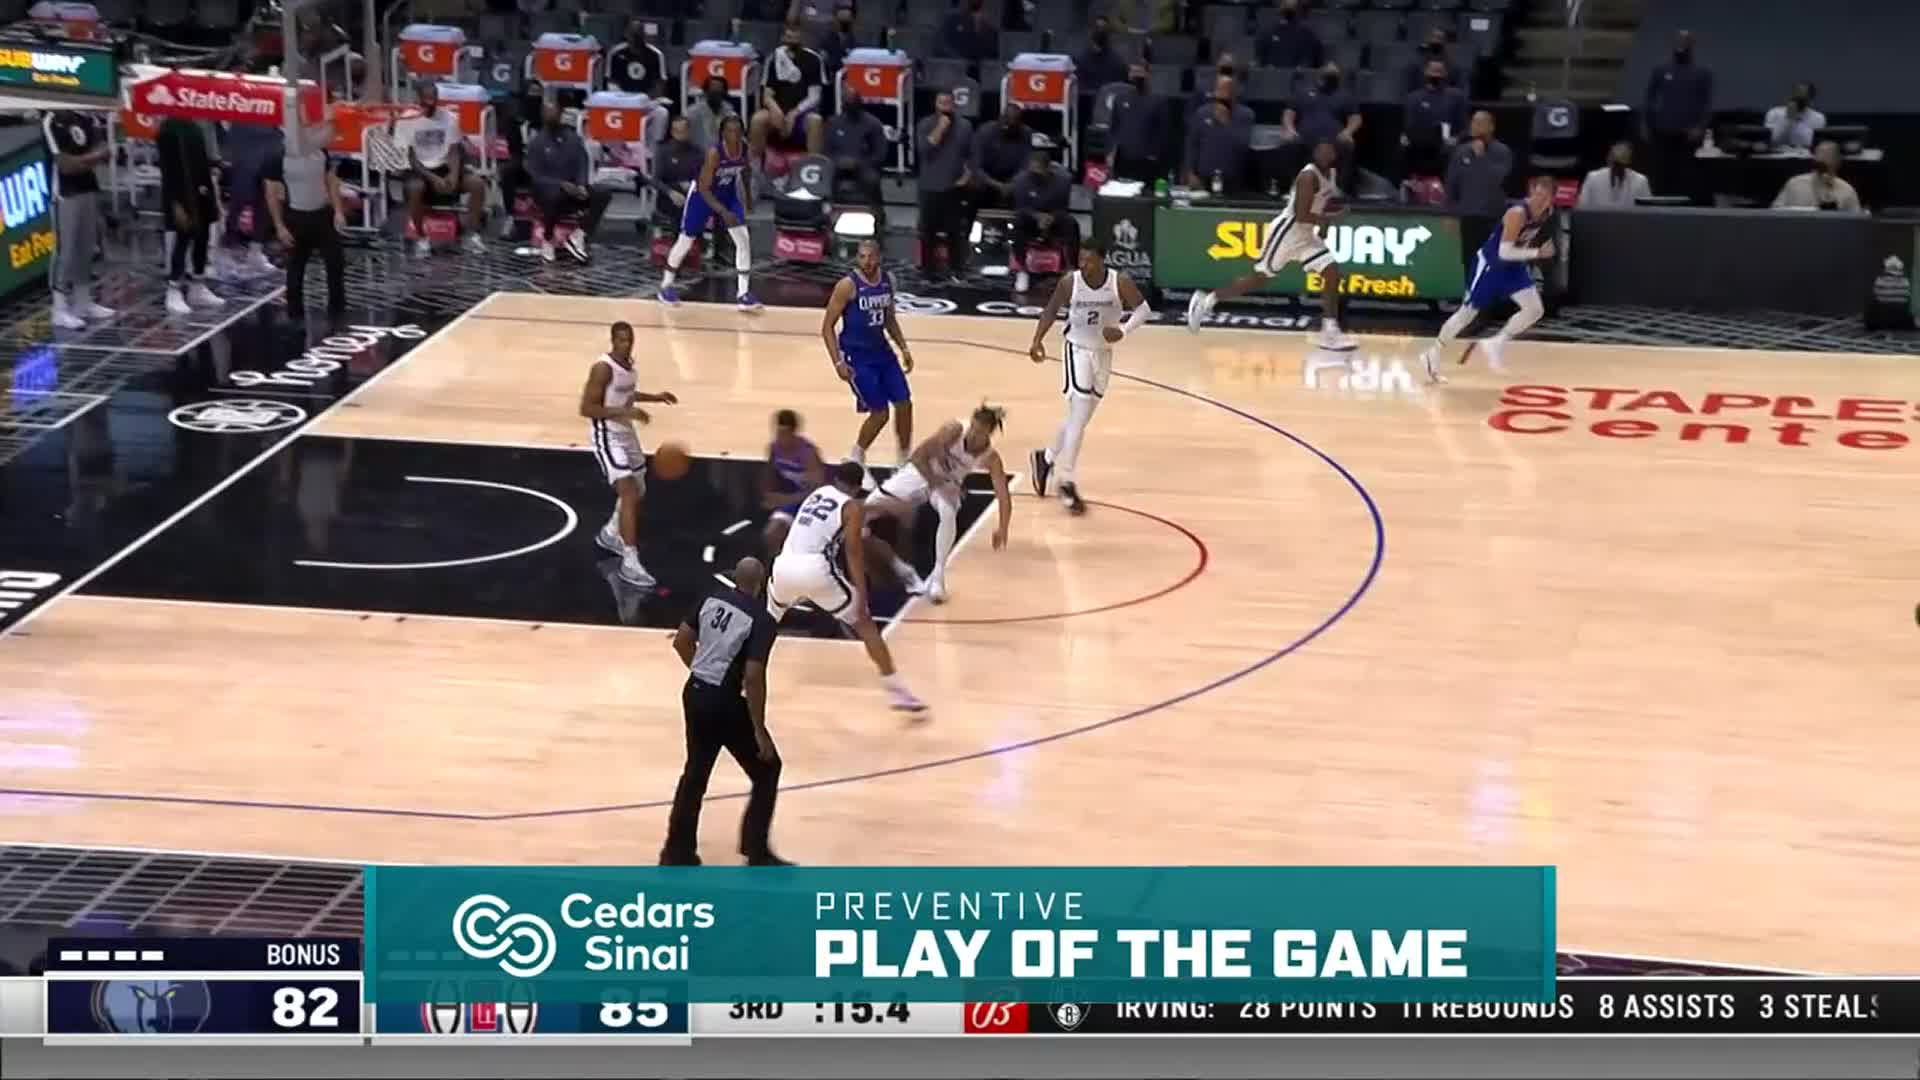 Cedars-Sinai Preventive Play of the Game | Clippers vs Grizzlies (4.21.21)